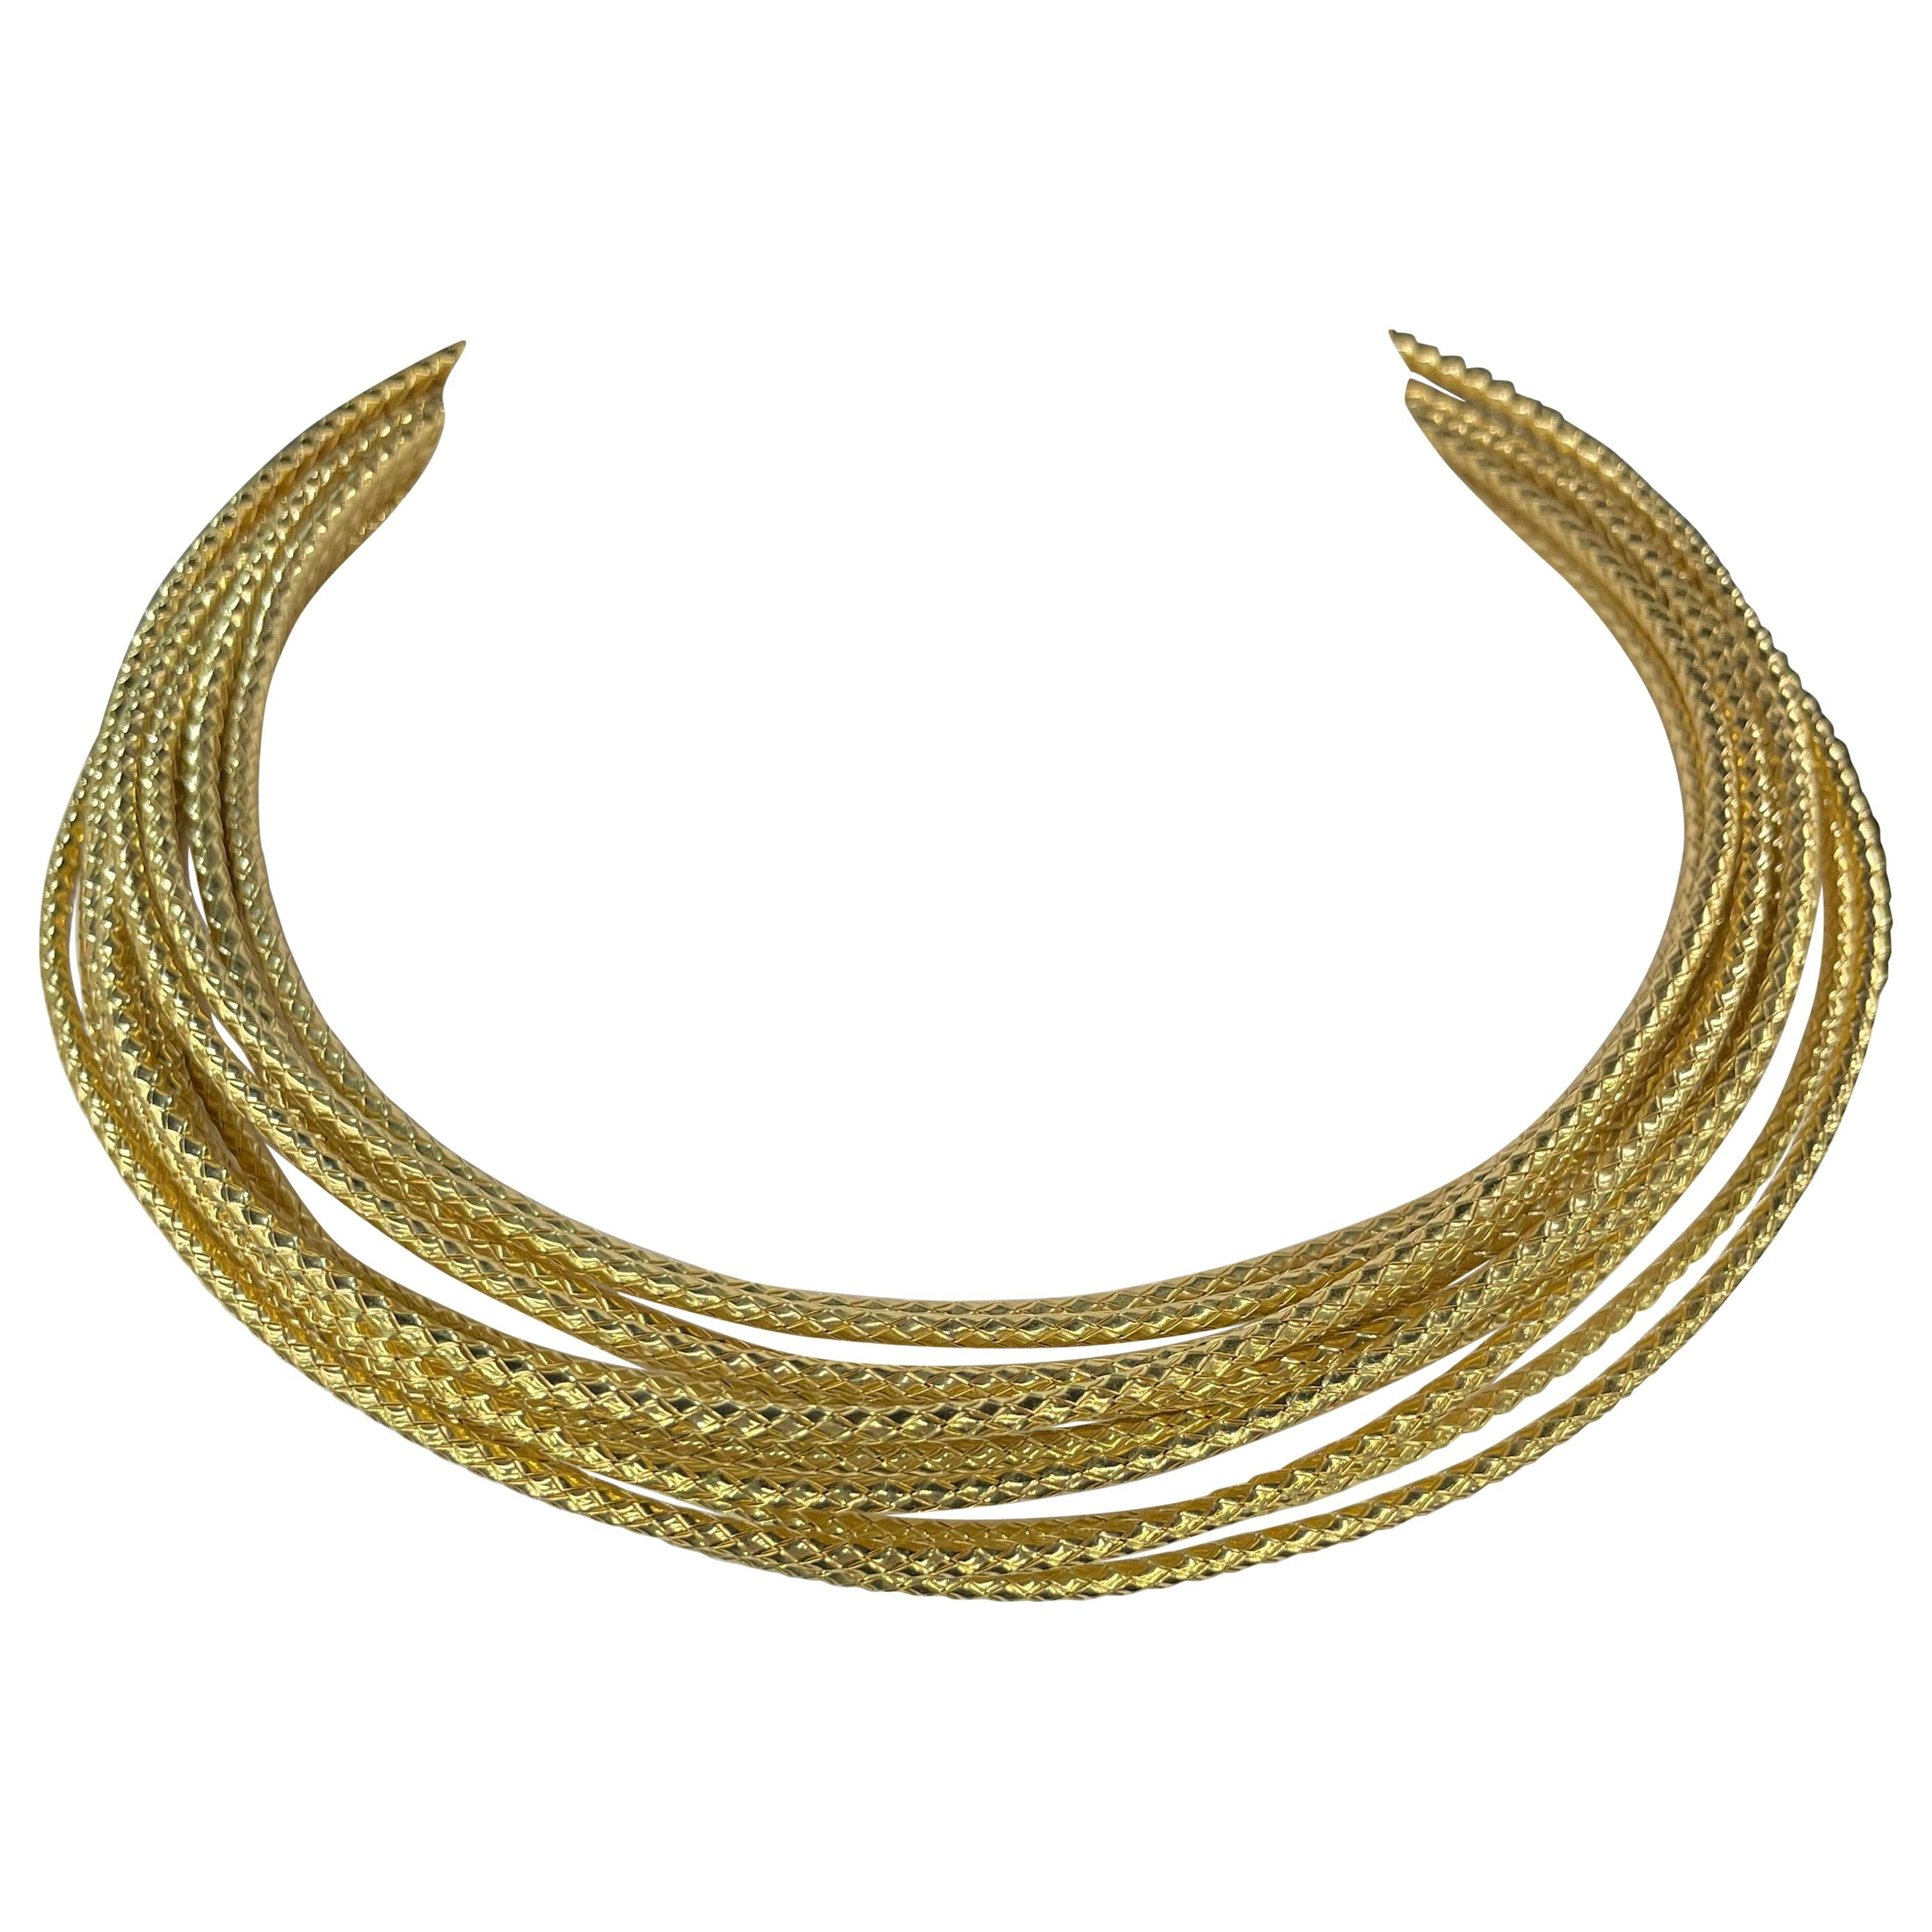 18 Karat Yellow Gold Multi Textured Rope Necklace 161.3 Grams Made in Roma